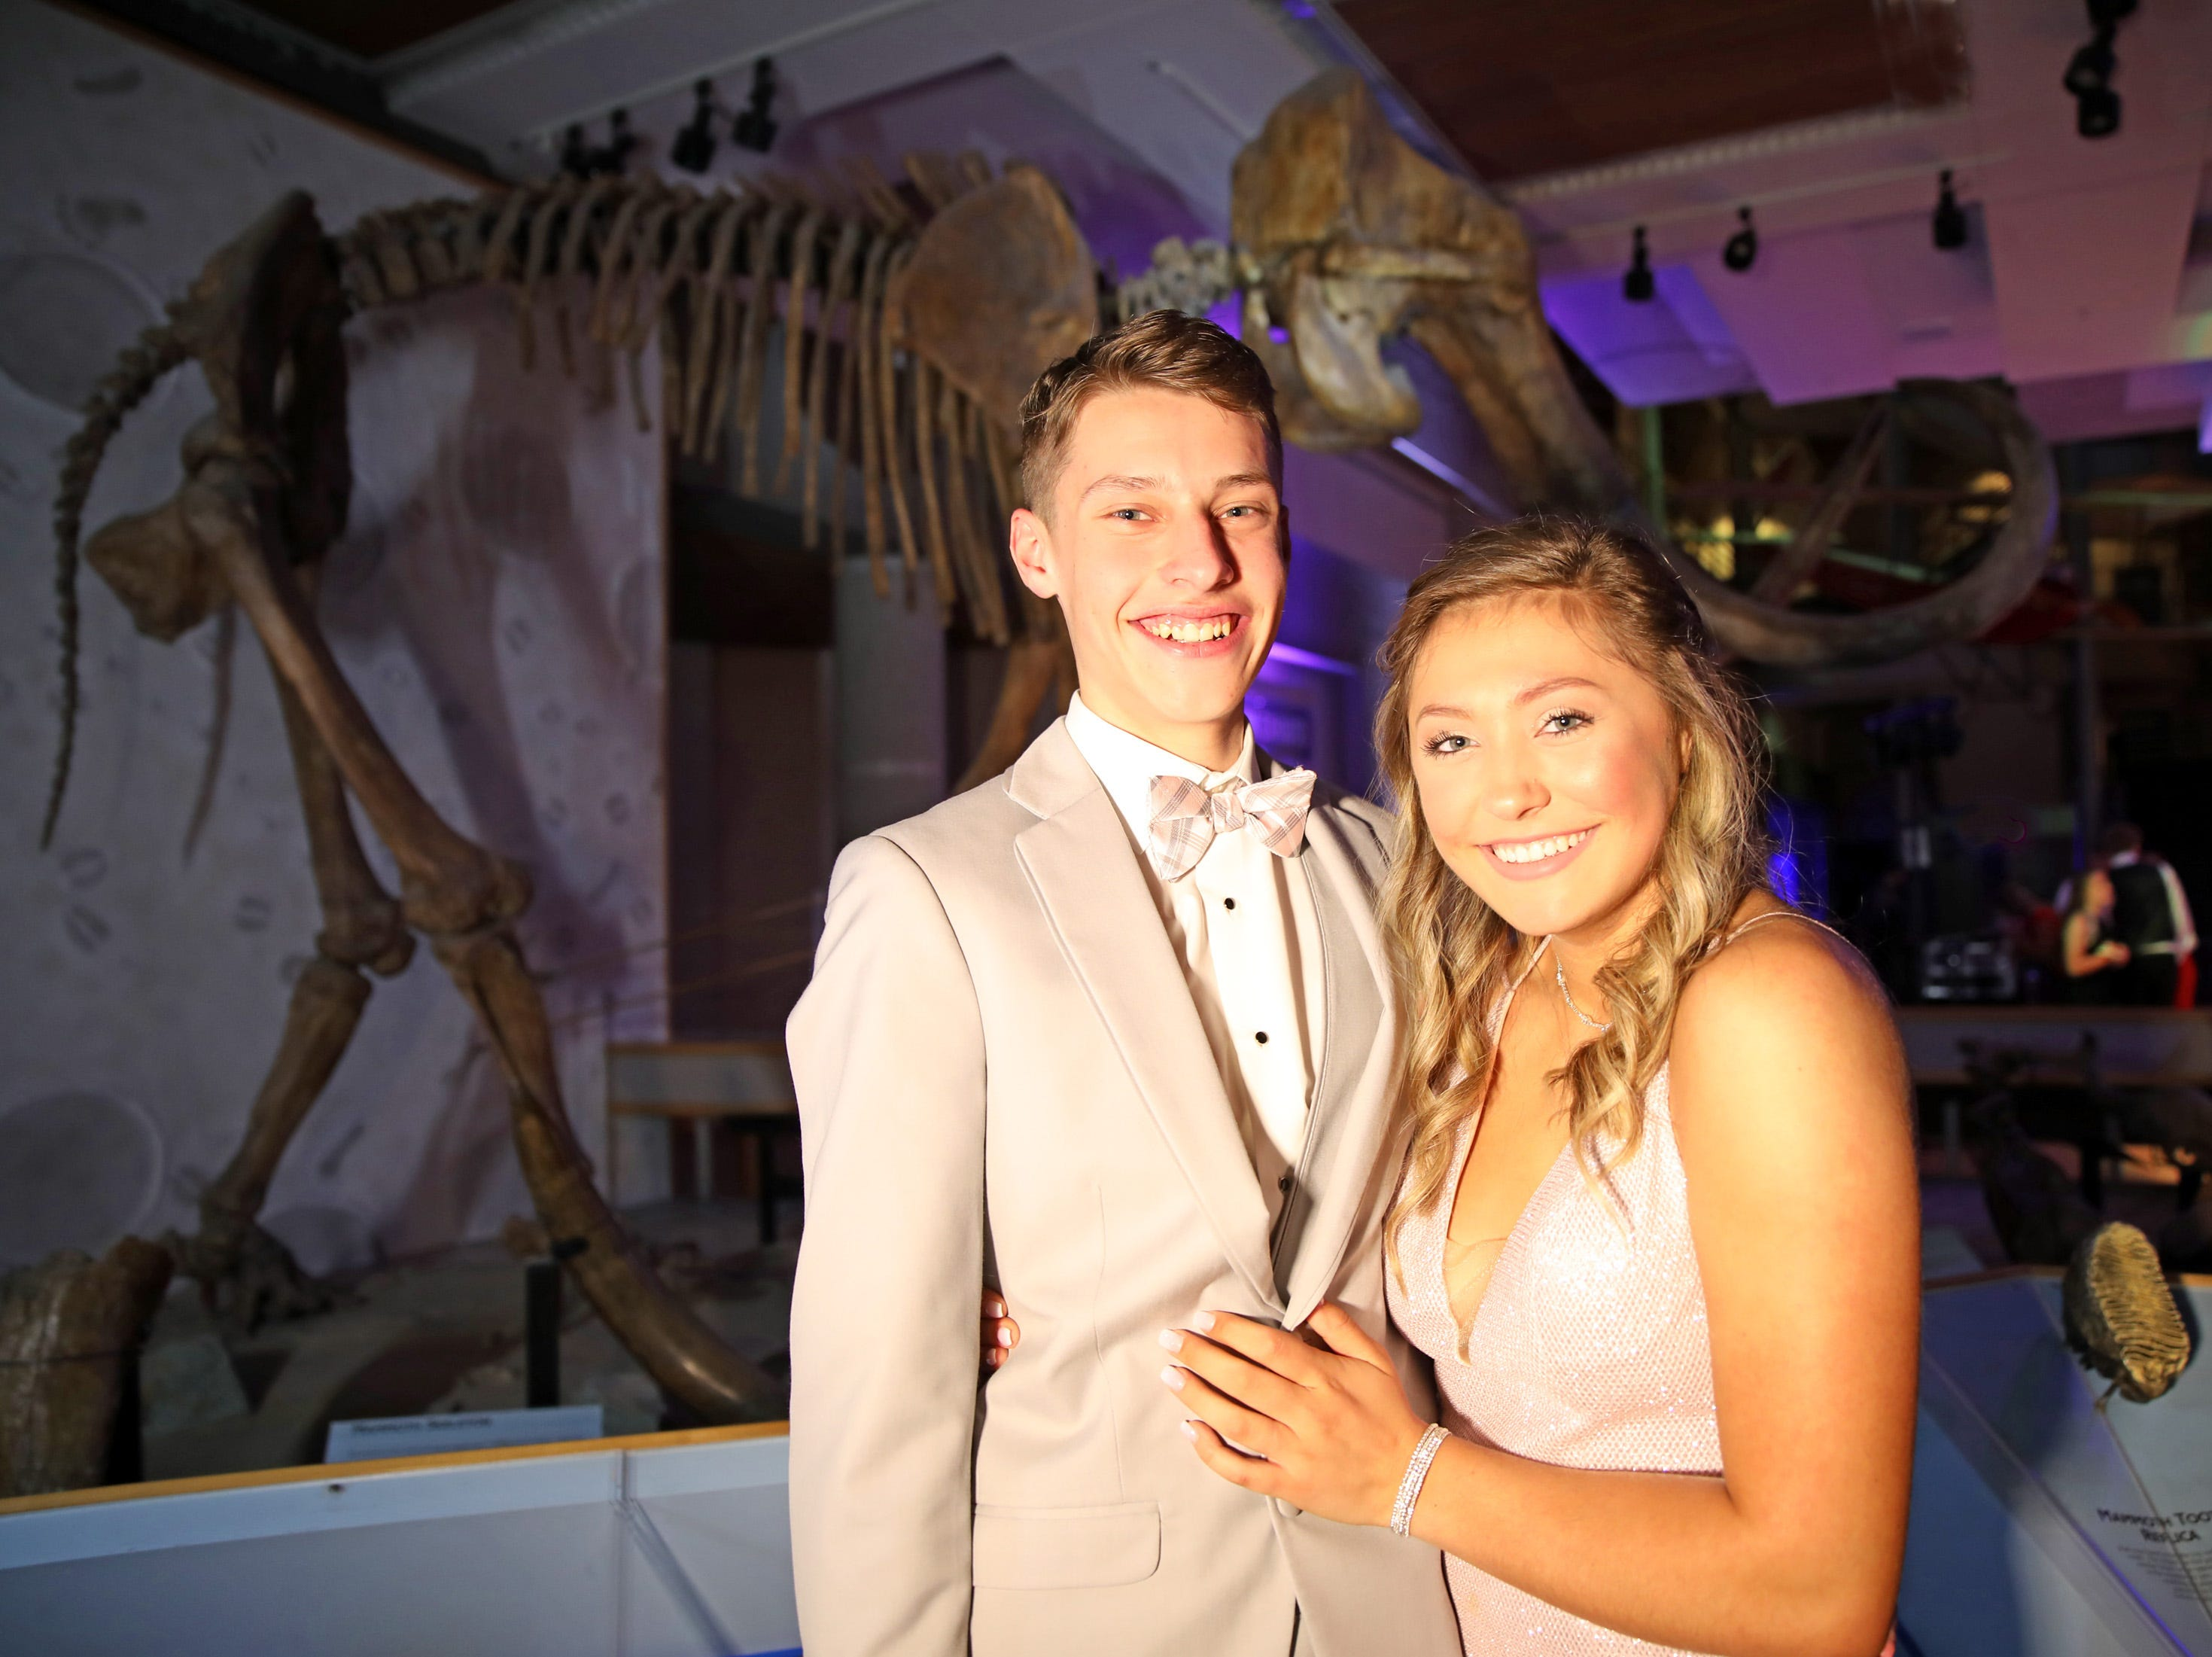 Junior Caden Janek and sophomore Lauryn Maggart stand before the full skeleton replica of a Hebior mammoth during the circus-themed Urbandale High School Junior/Senior Prom Spectacular at the State Historical Building in Des Moines on Saturday, April 11, 2019.  The post-prom event is held at school right after the dance from 11 p.m. to 4:30 a.m. with food, prizes, a hypnotist, inflatables, and casino games.